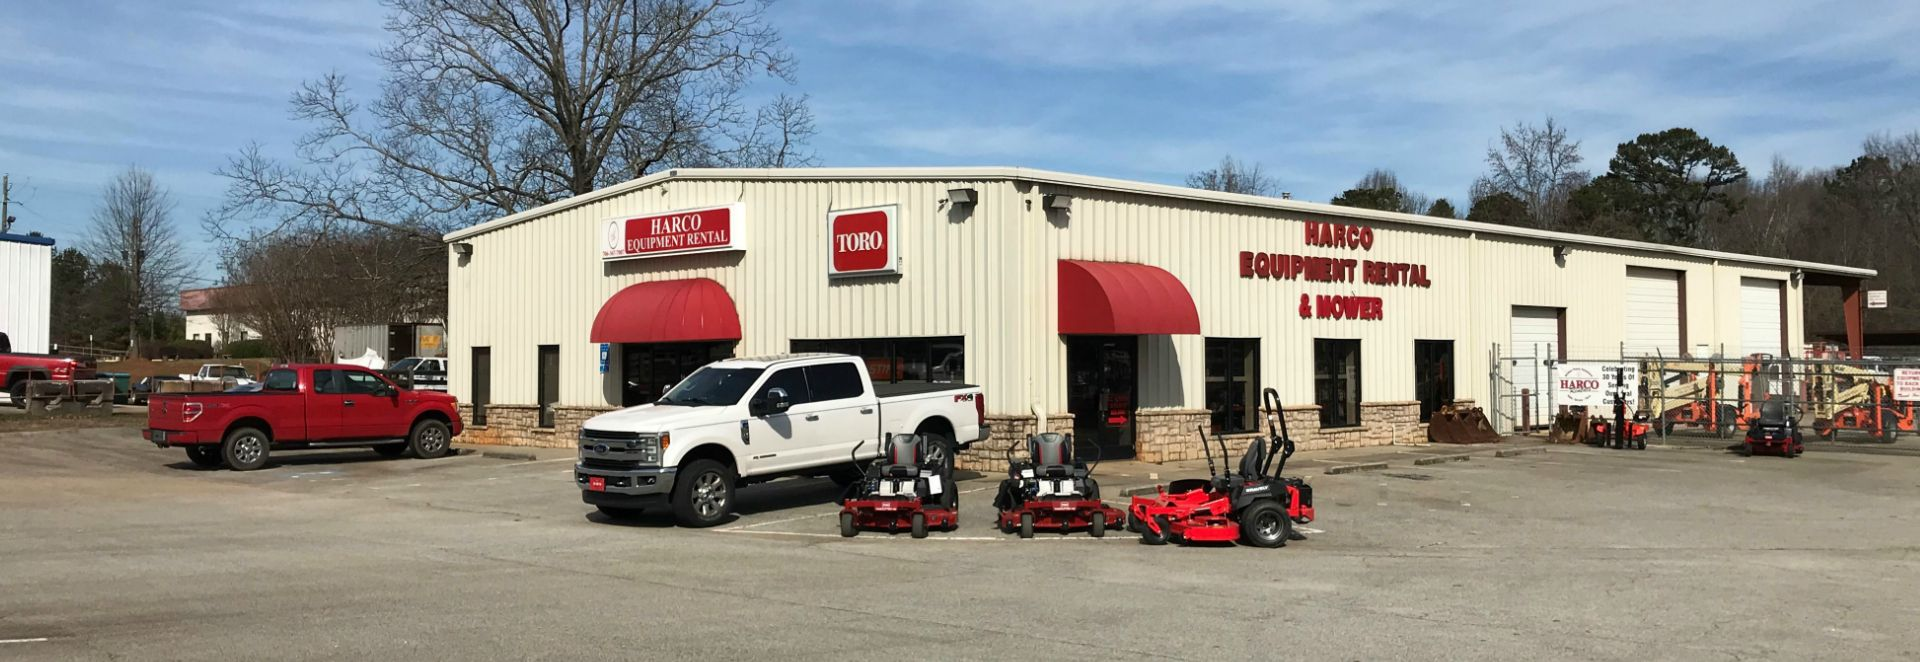 Home Harco Equipment Rental and Outdoor Power